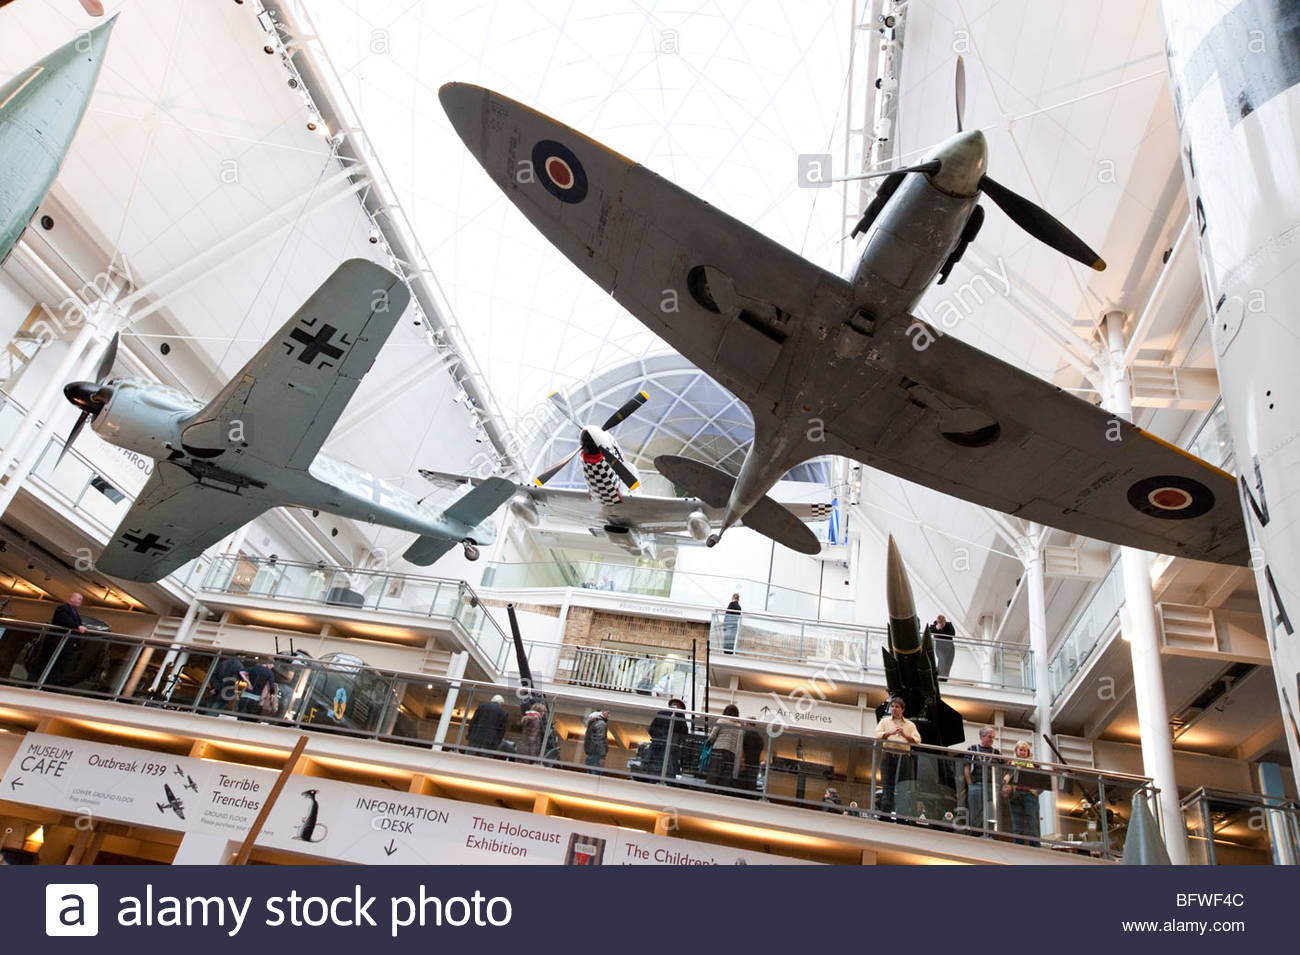 World War II fighter aircraft in the Imperial War Museum, London, England, UK - Stock Image